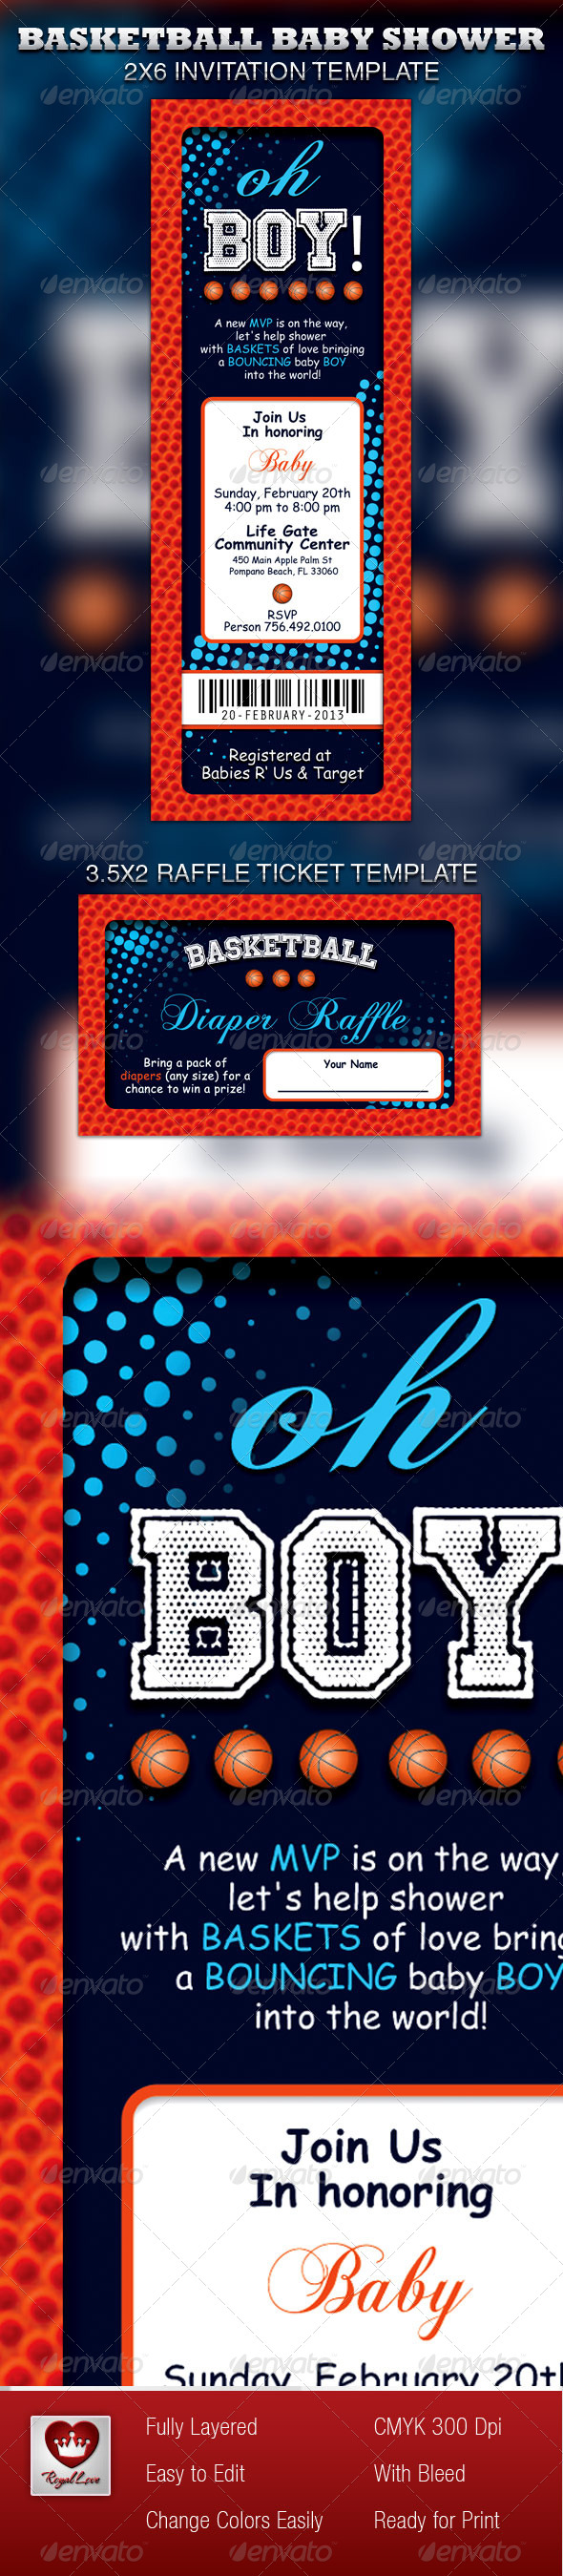 Basketball Baby Shower Invitation & Raffle Ticket - Invitations Cards & Invites